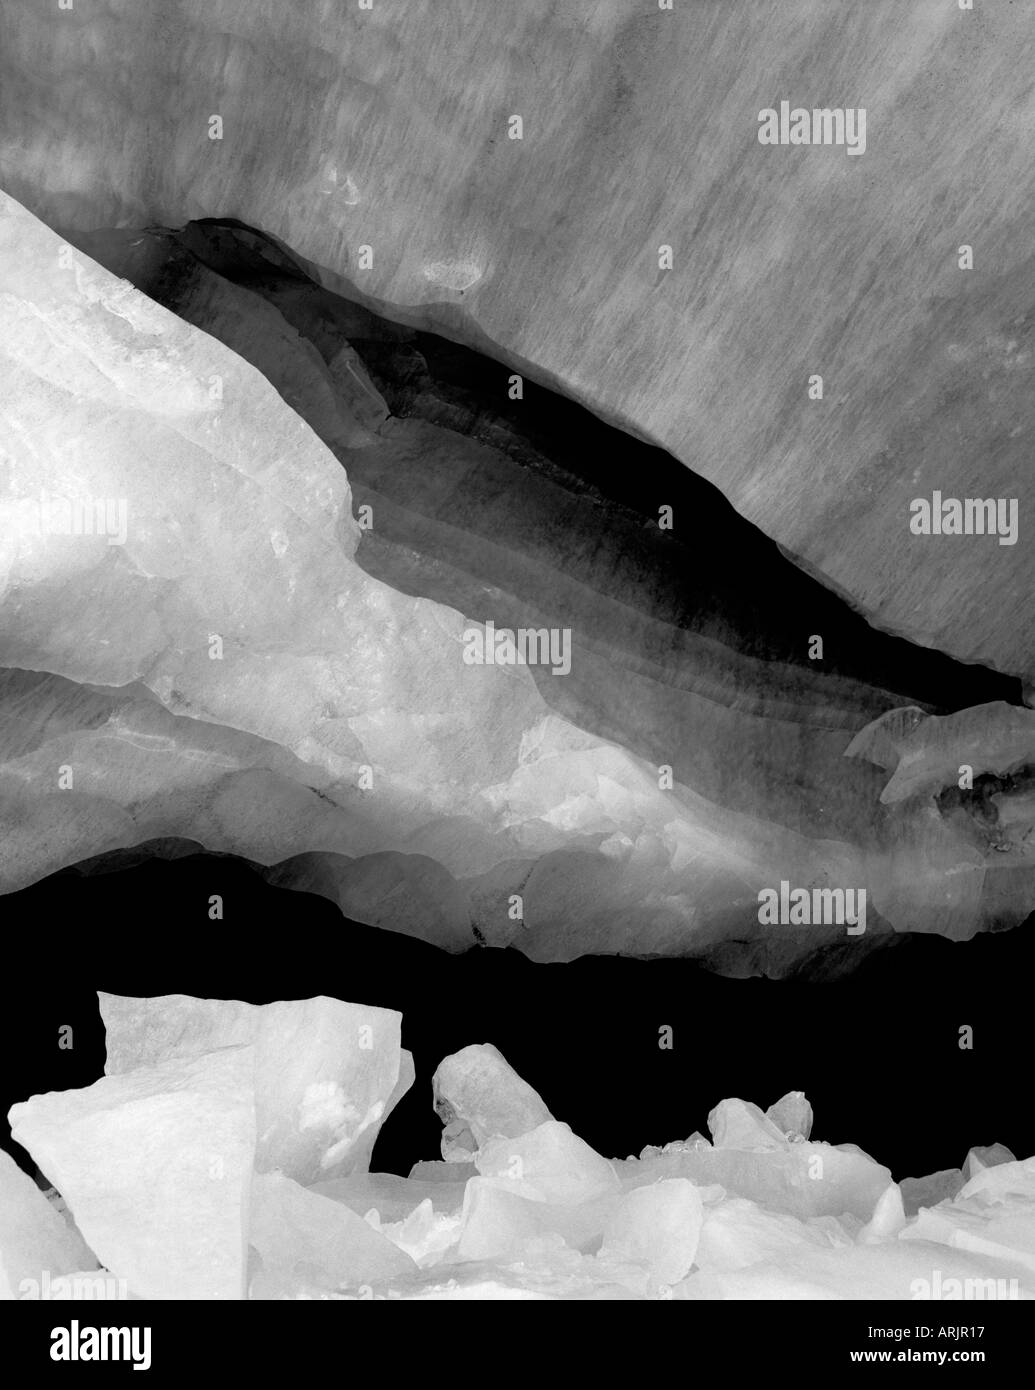 Closeup of glacier ice at the entrance of a naturally formed glacier cave Stock Photo